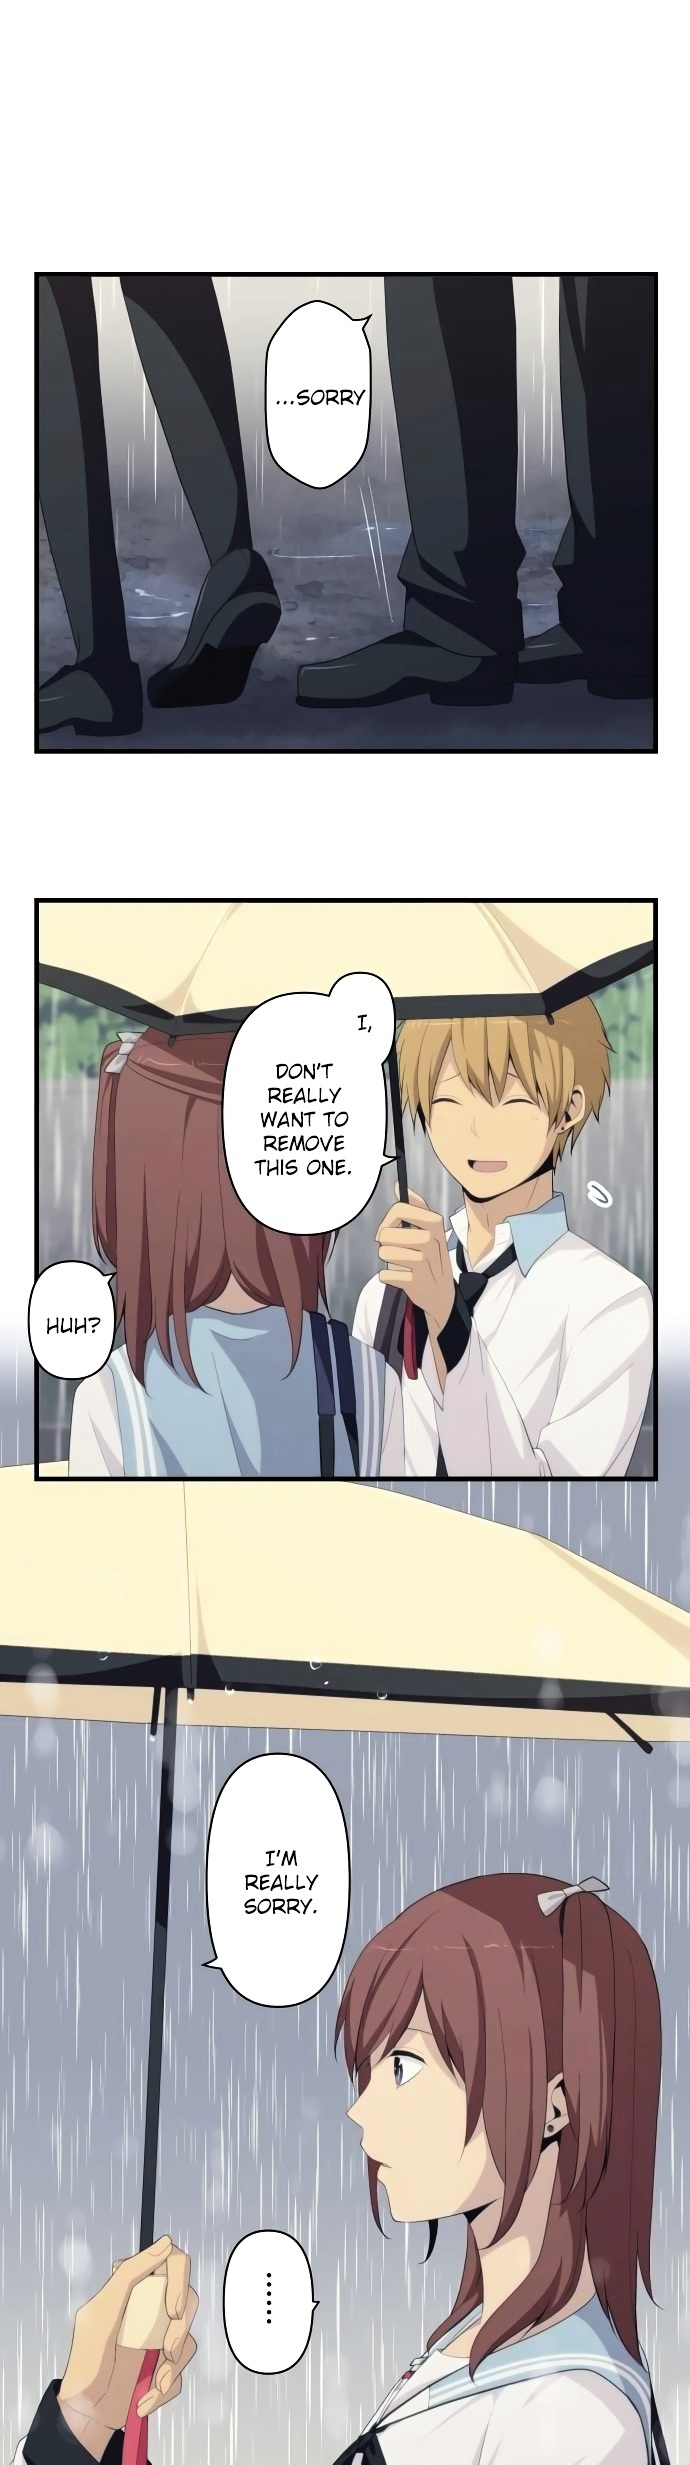 ReLIFE Chapter 165  Online Free Manga Read Image 3